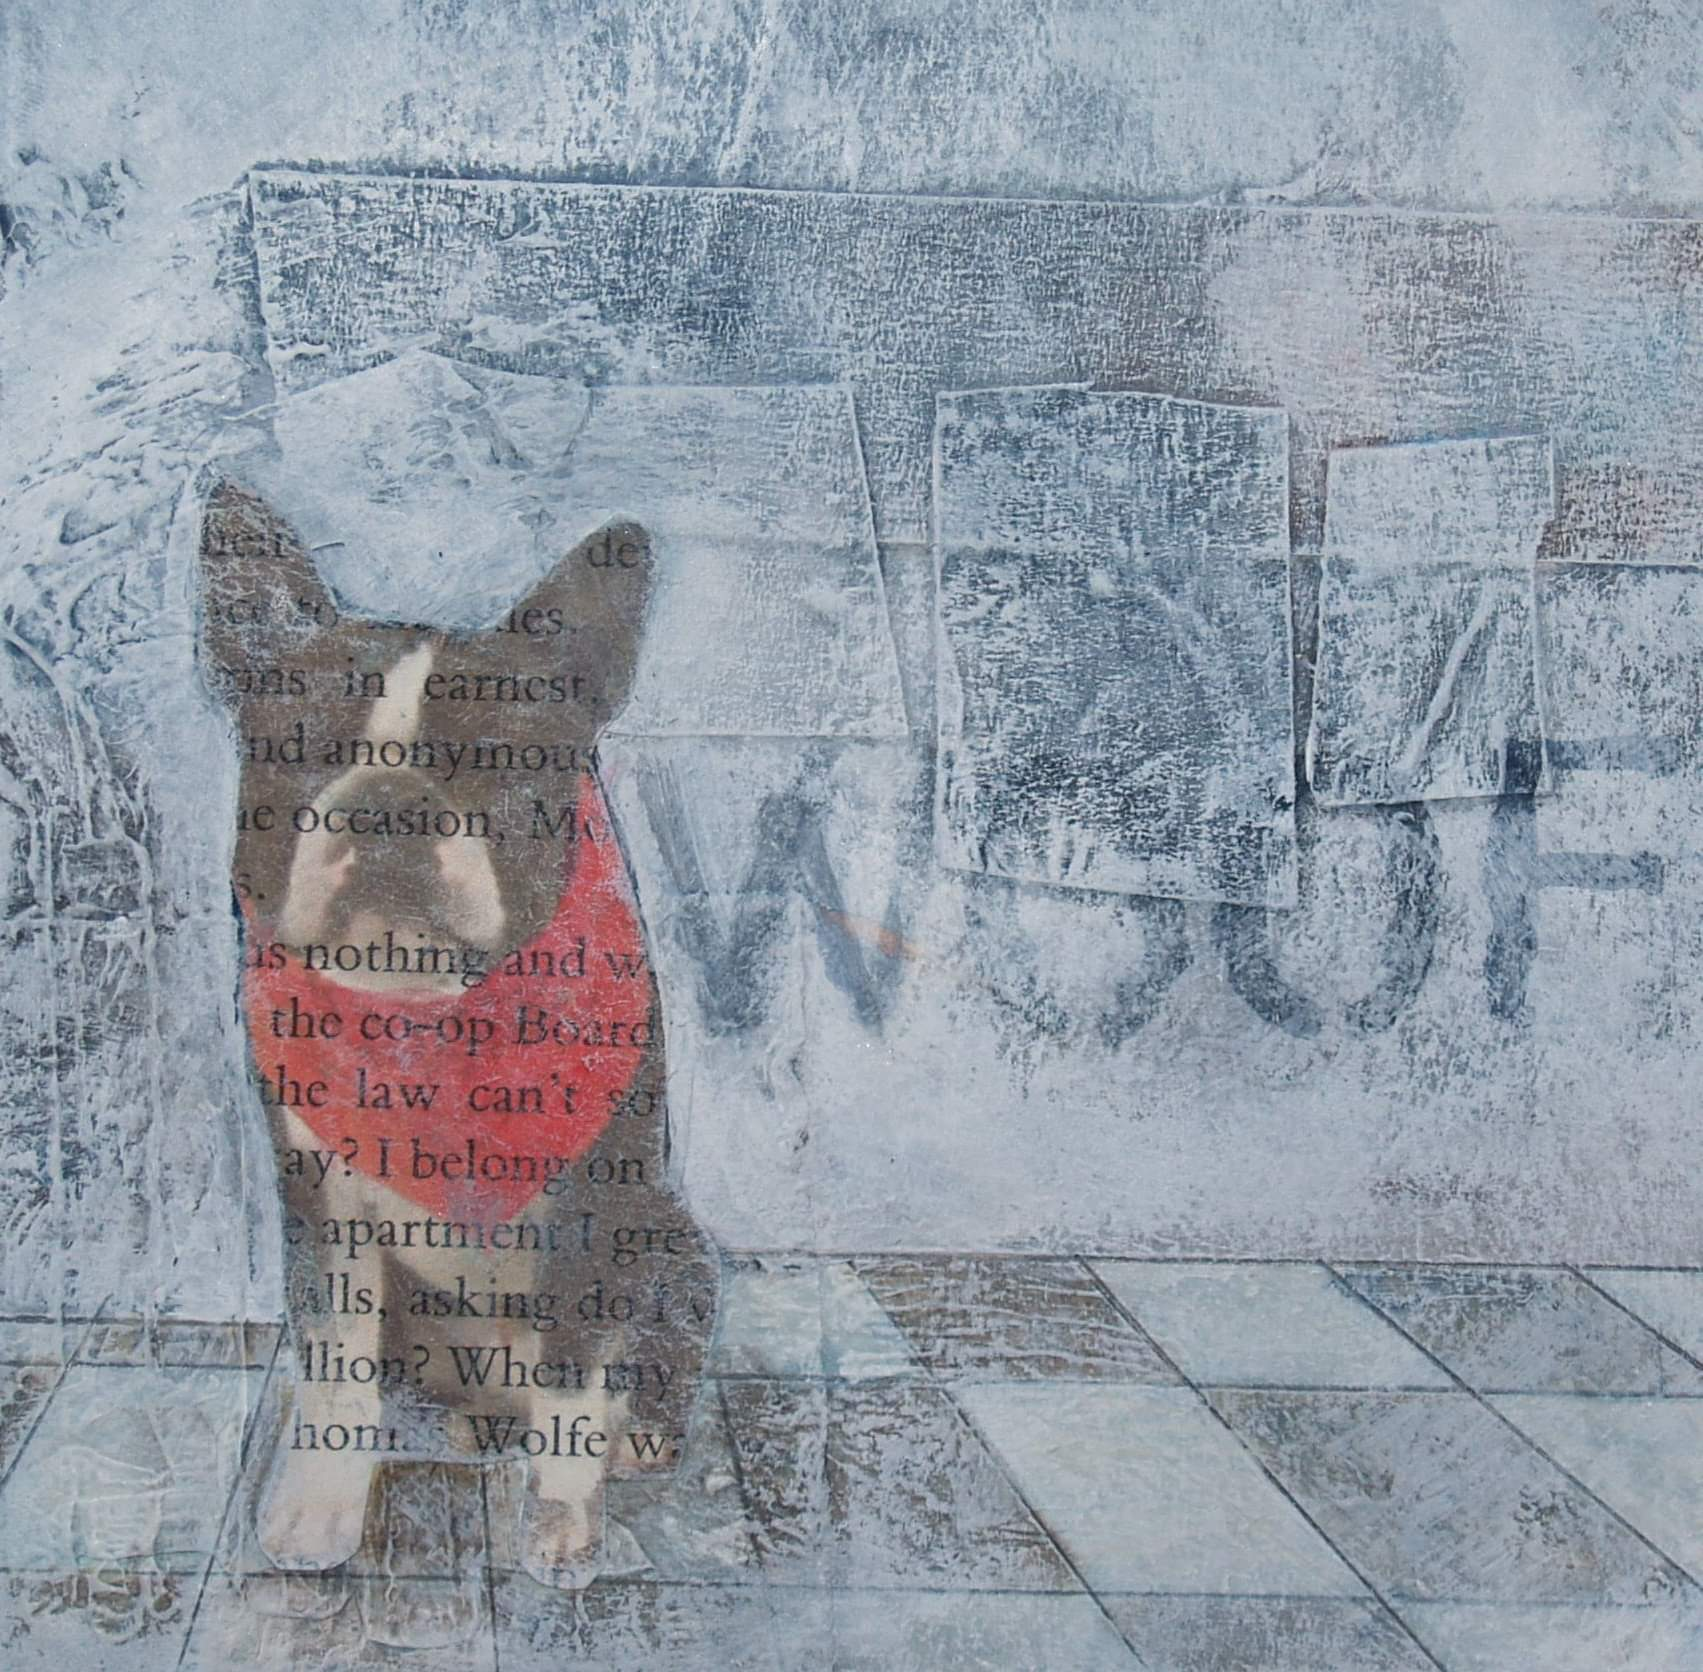 'Woof' by artist Gwen Black